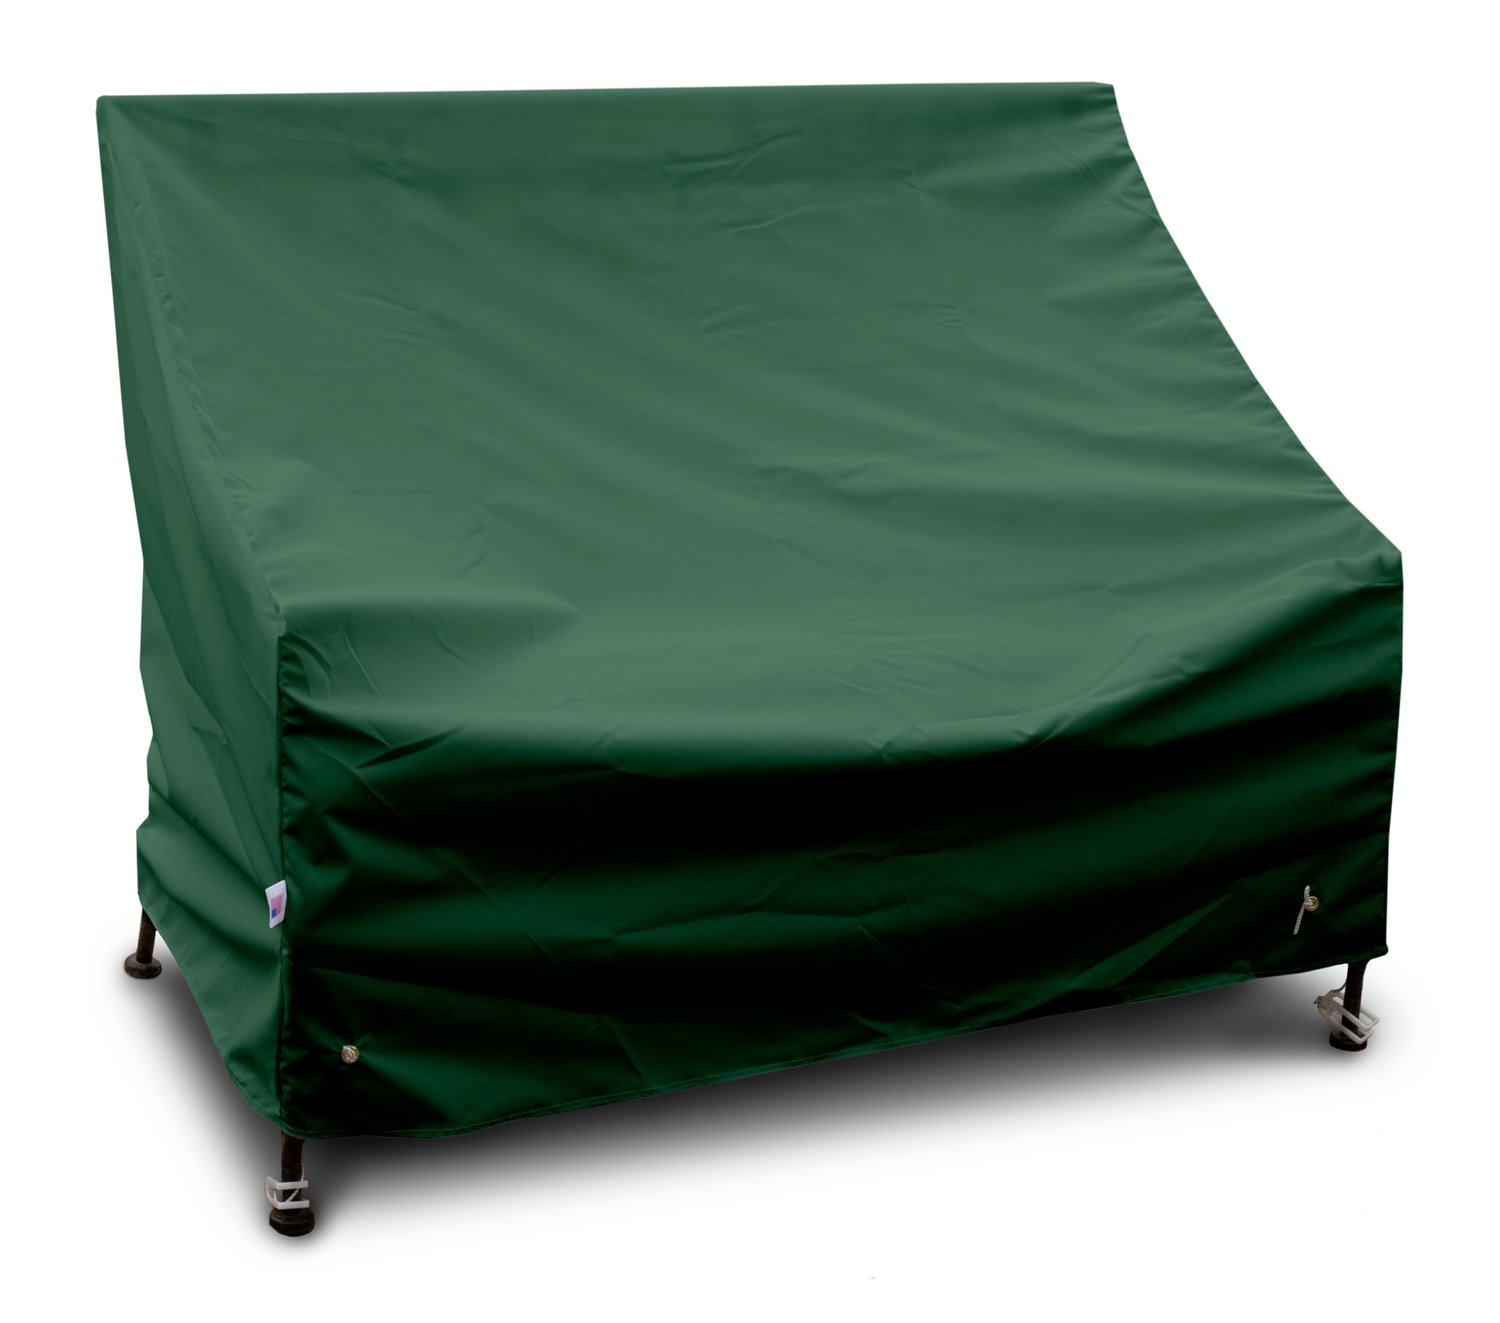 KoverRoos Weathermax 64202 4-Feet Bench/Glider Cover, 51-Inch Width by 26-Inch Diameter by 35-Inch Height, Forest Green